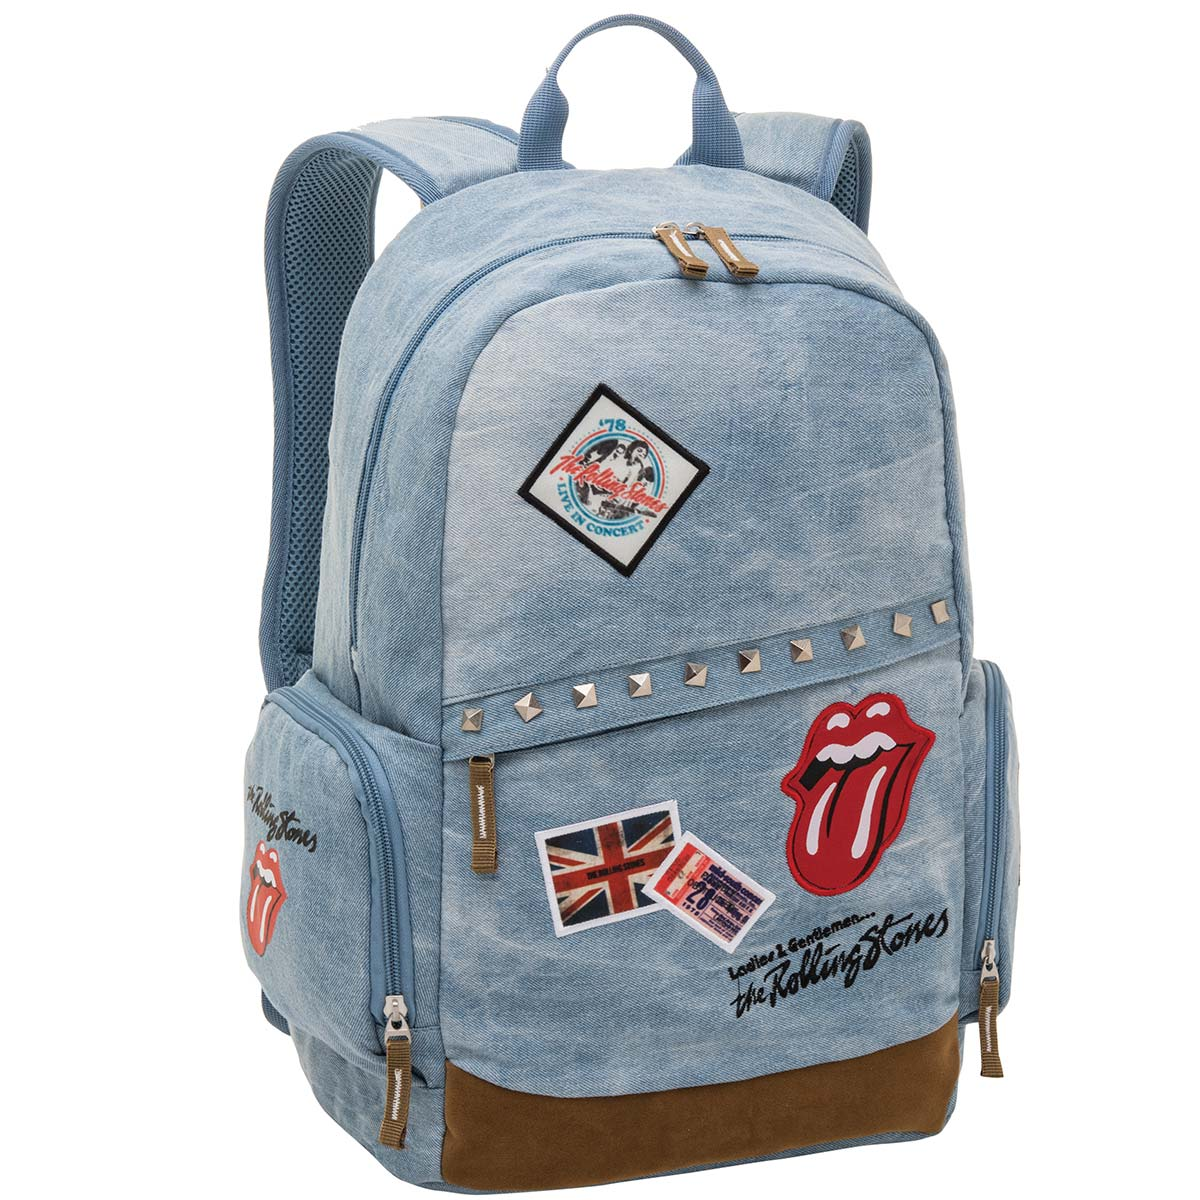 Mochila The Rolling Stones Live in Concert Ladies & Gentlemen